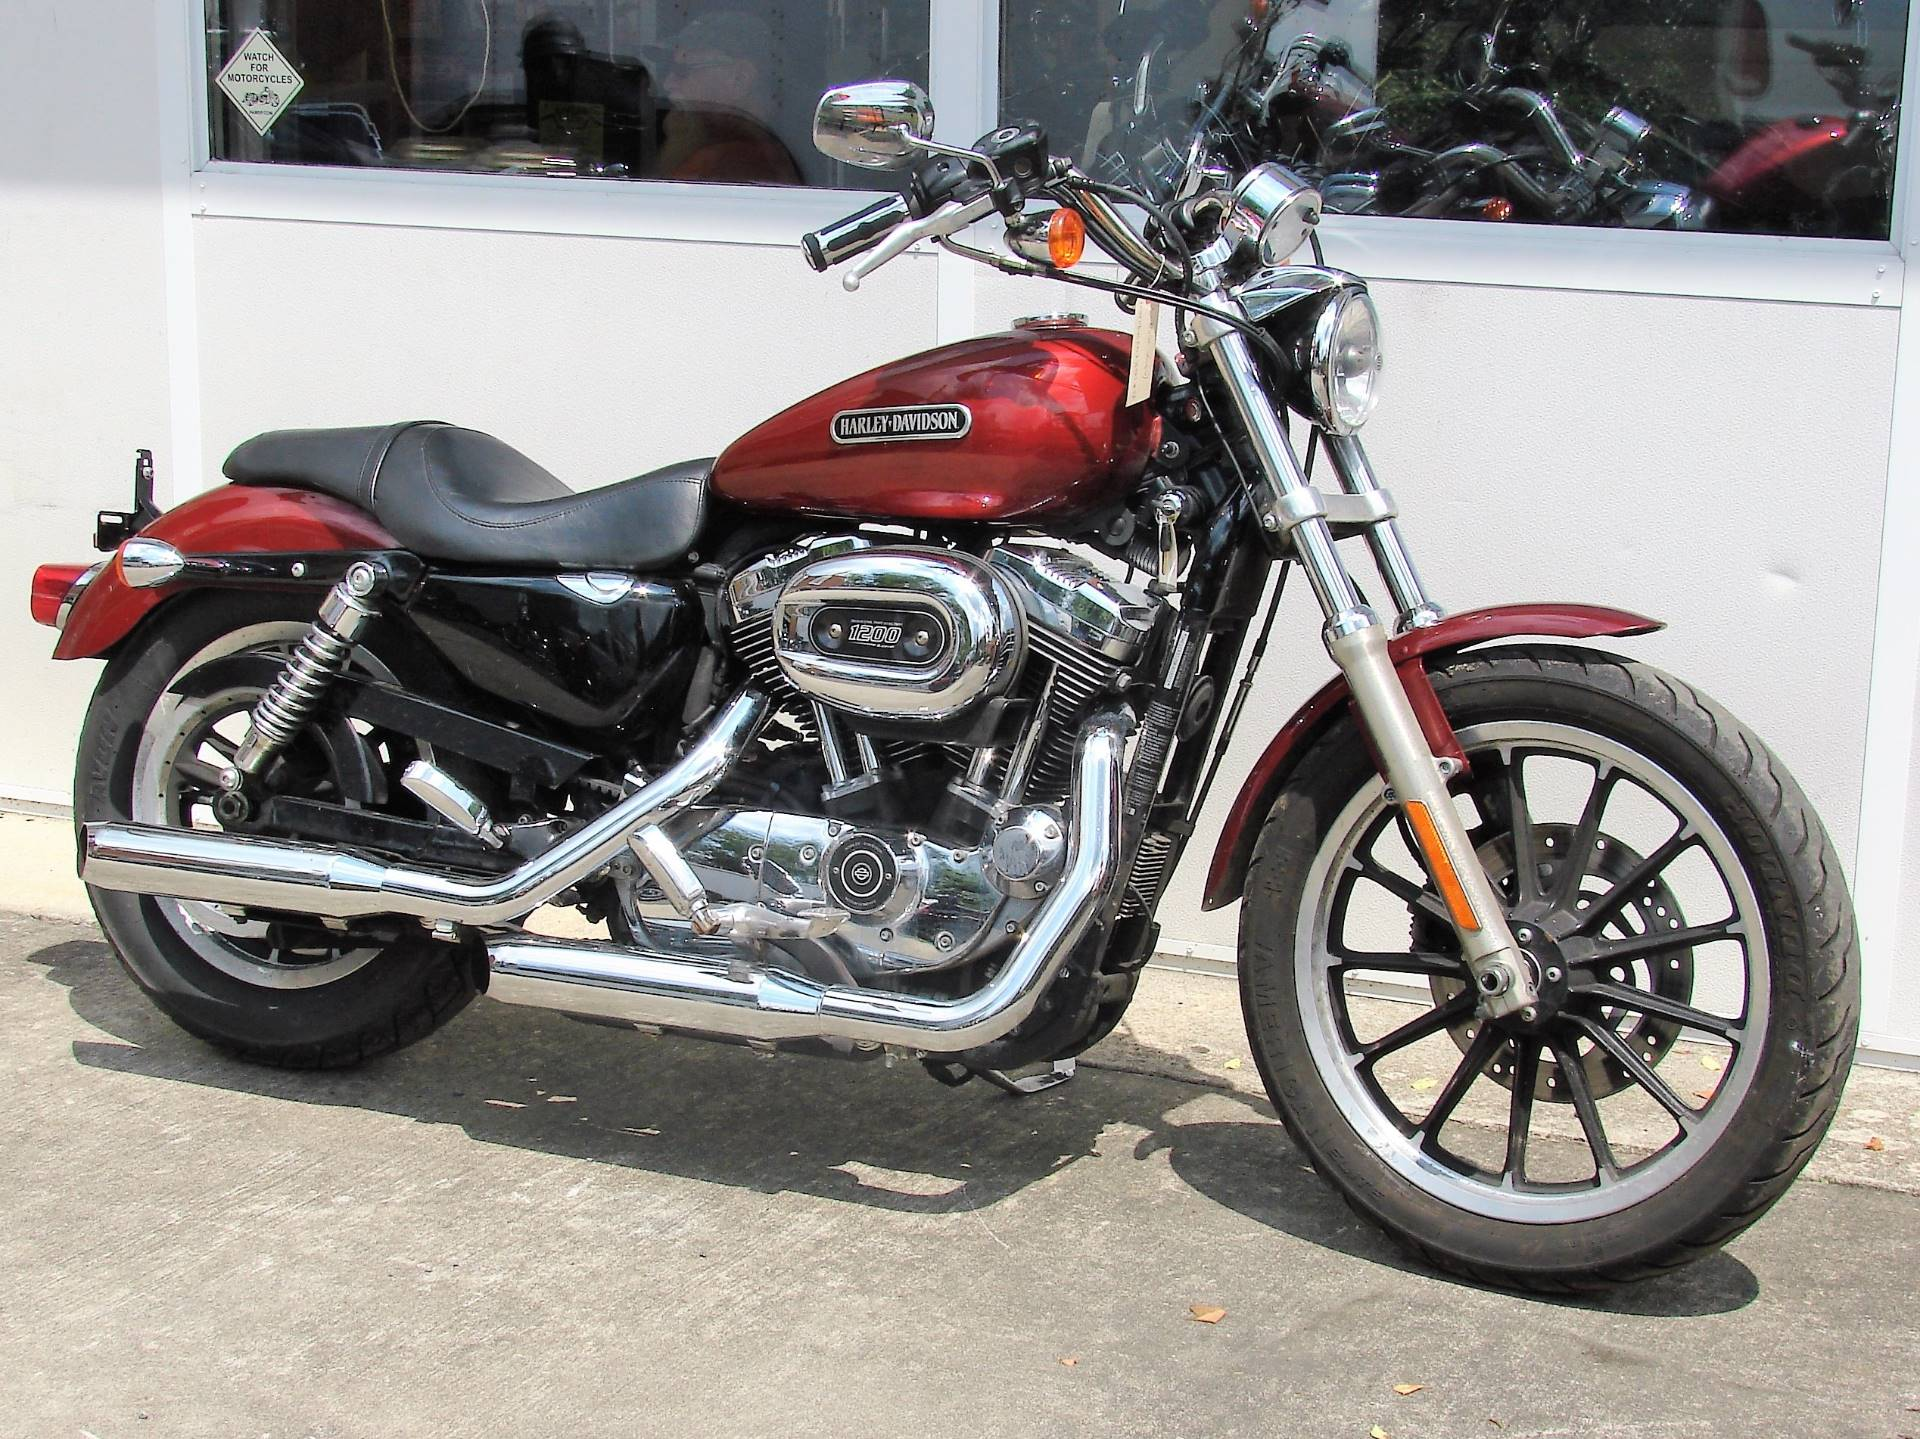 2009 Harley-Davidson XL Sportster 1200cc in Williamstown, New Jersey - Photo 13